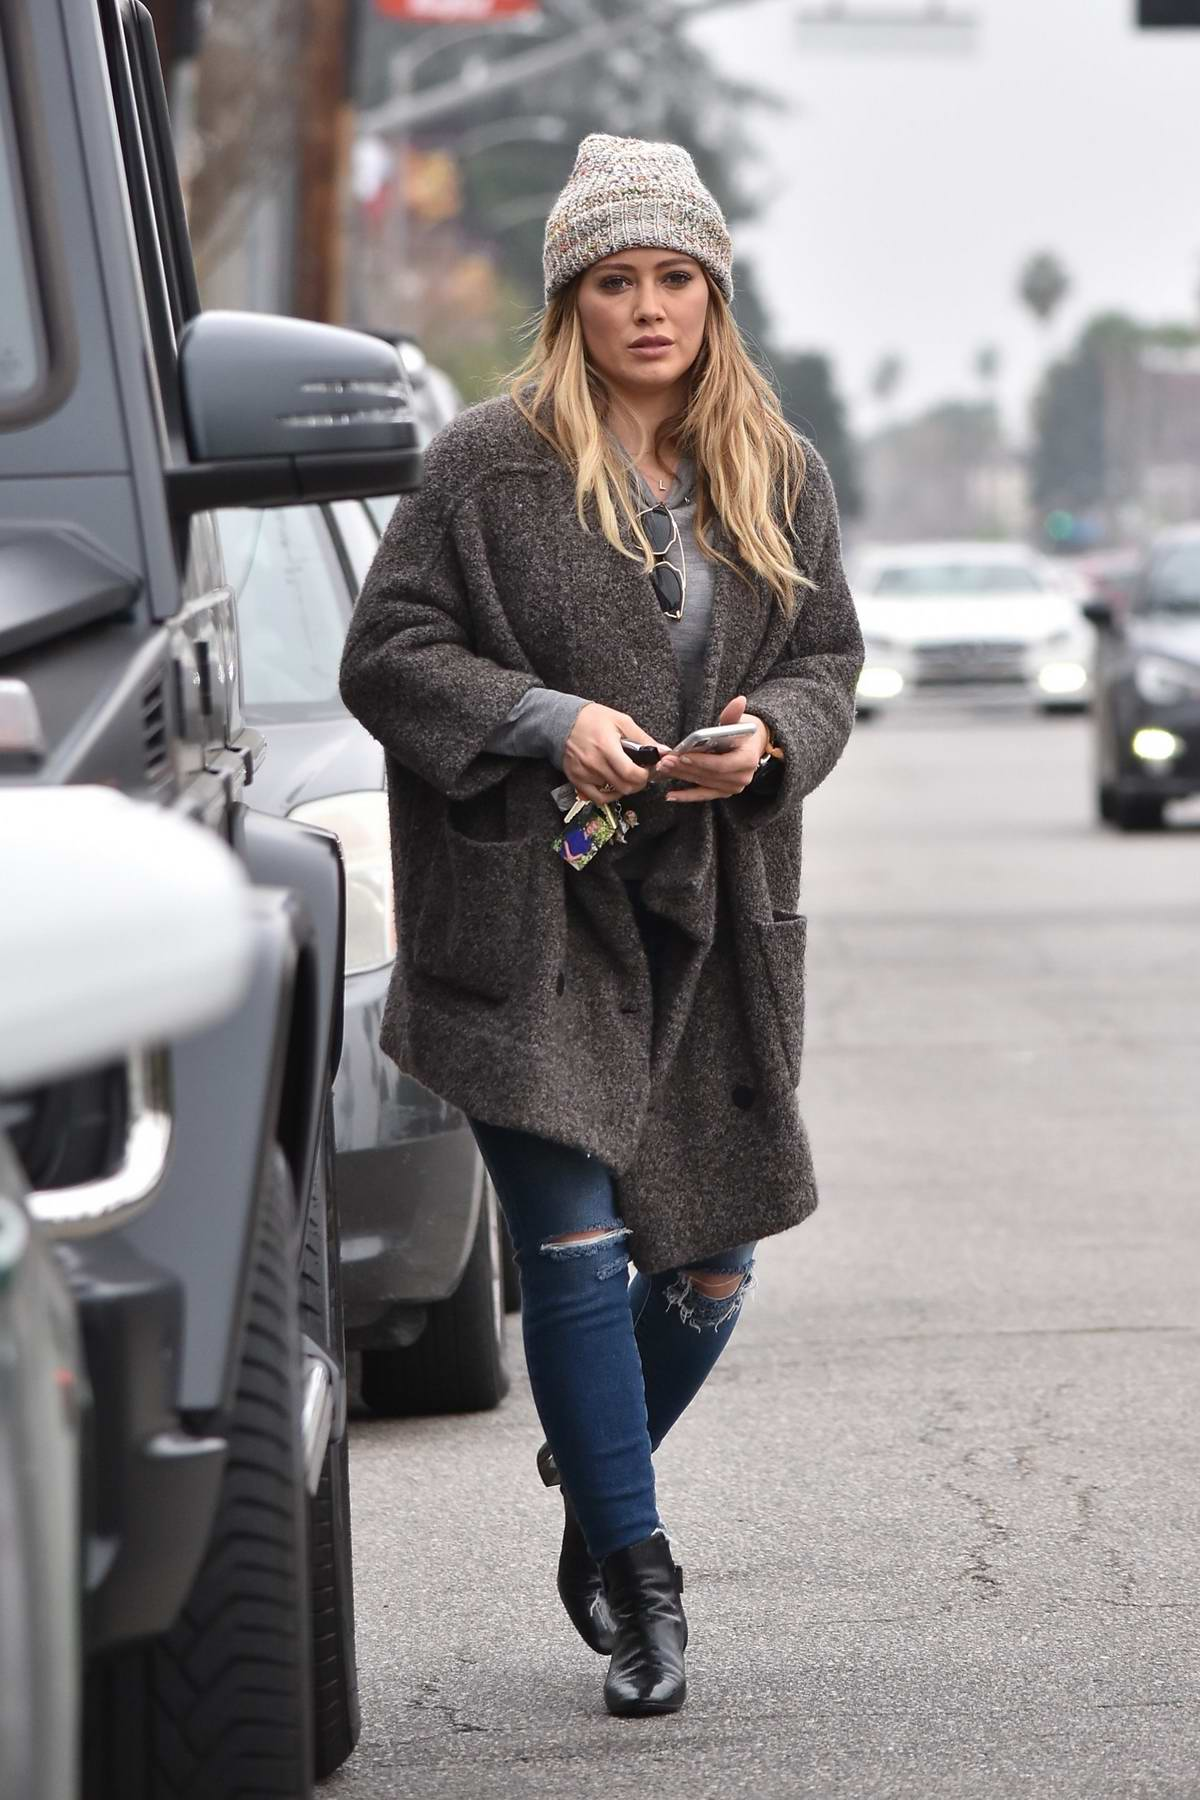 Hilary Duff wears a grey cardigan and knit beanie while out in Toluca Lake, Los Angeles